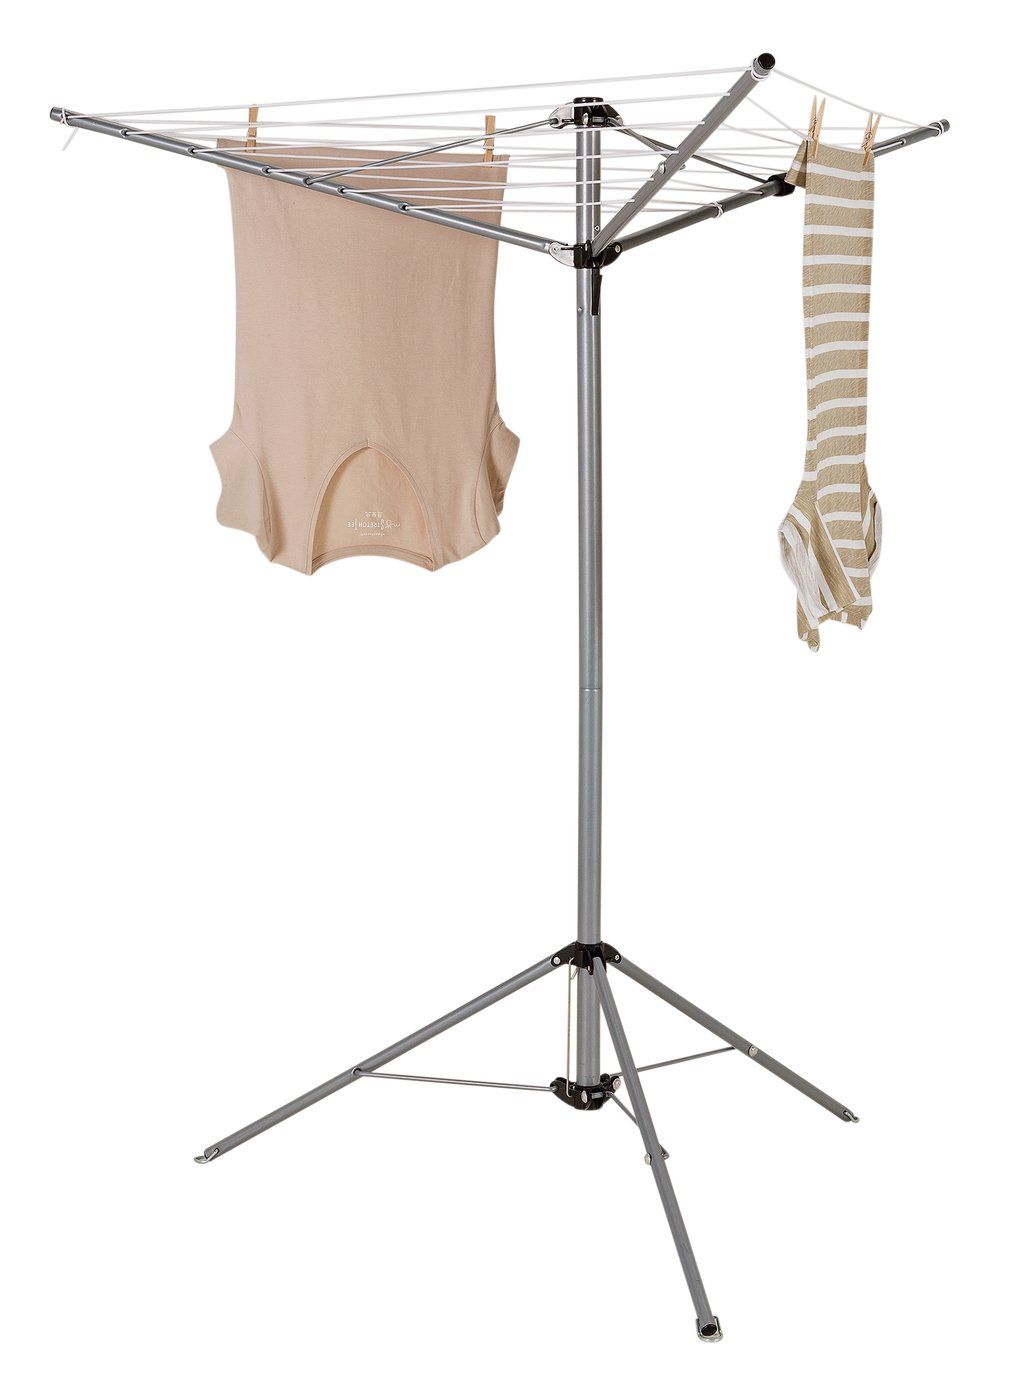 better dri 75m 3 tier extendable rotating airer review. Black Bedroom Furniture Sets. Home Design Ideas